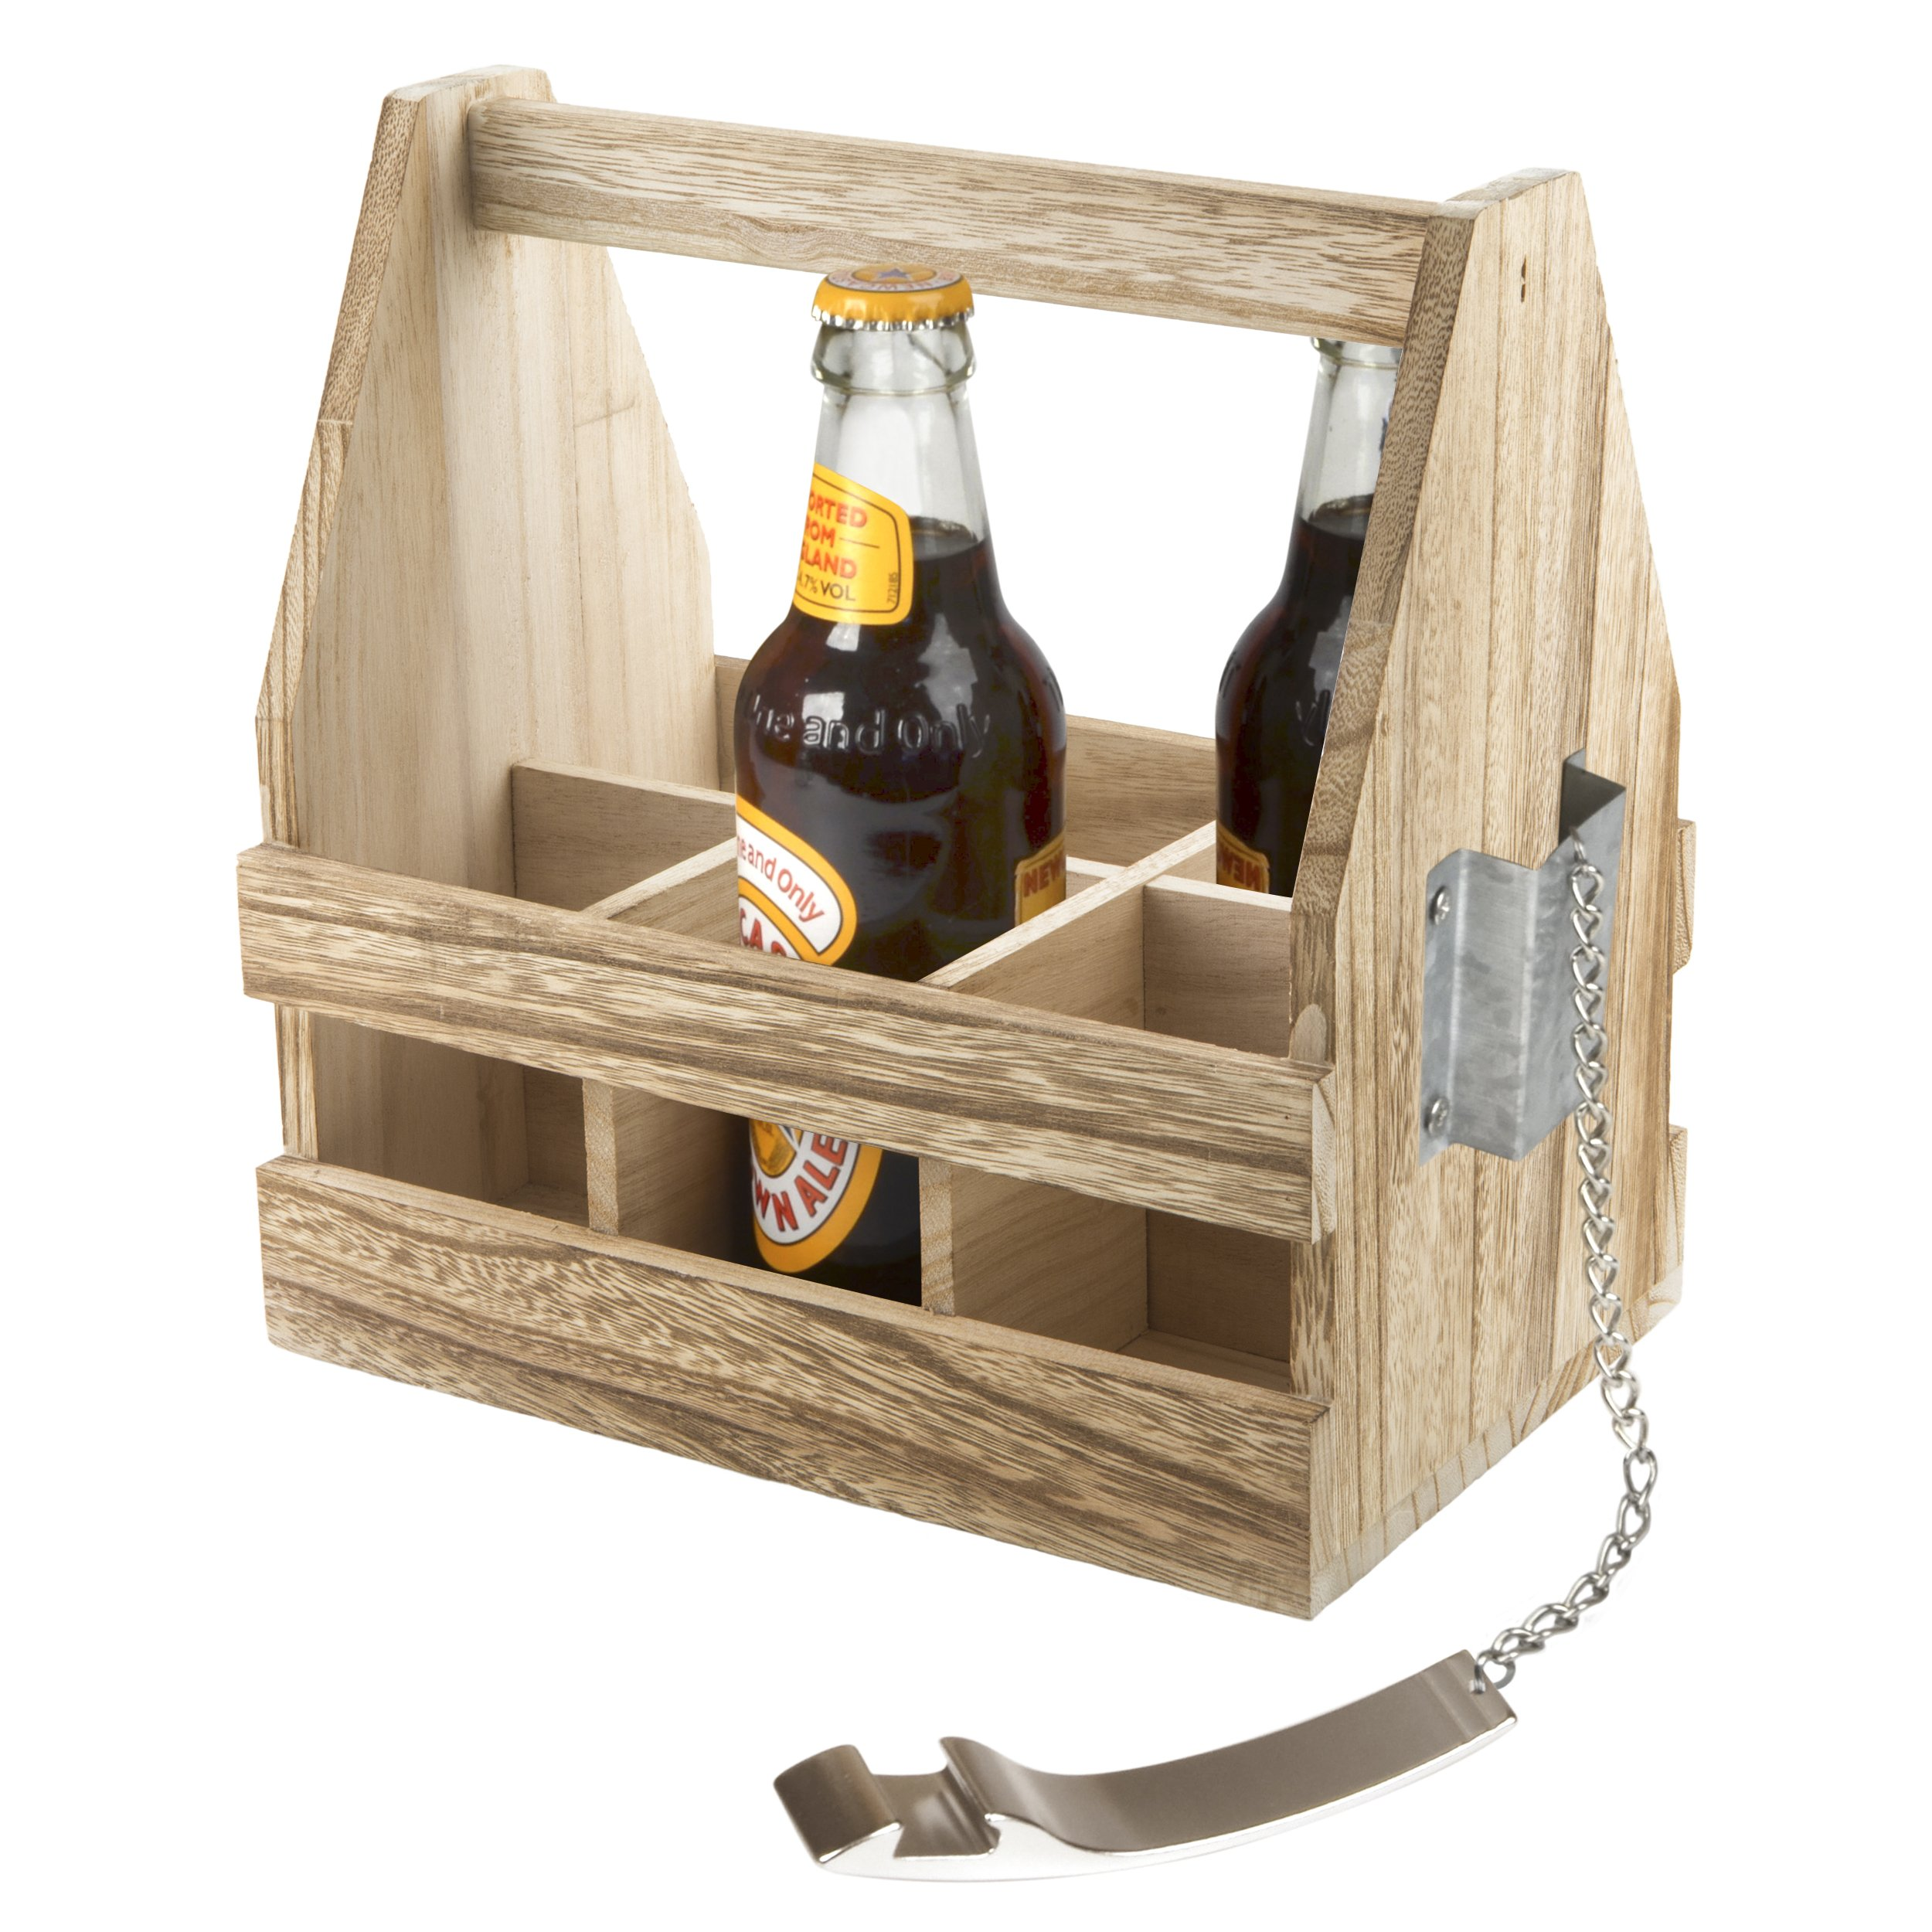 Artland 22110 Beer Bottle Caddy, Medium, Wood